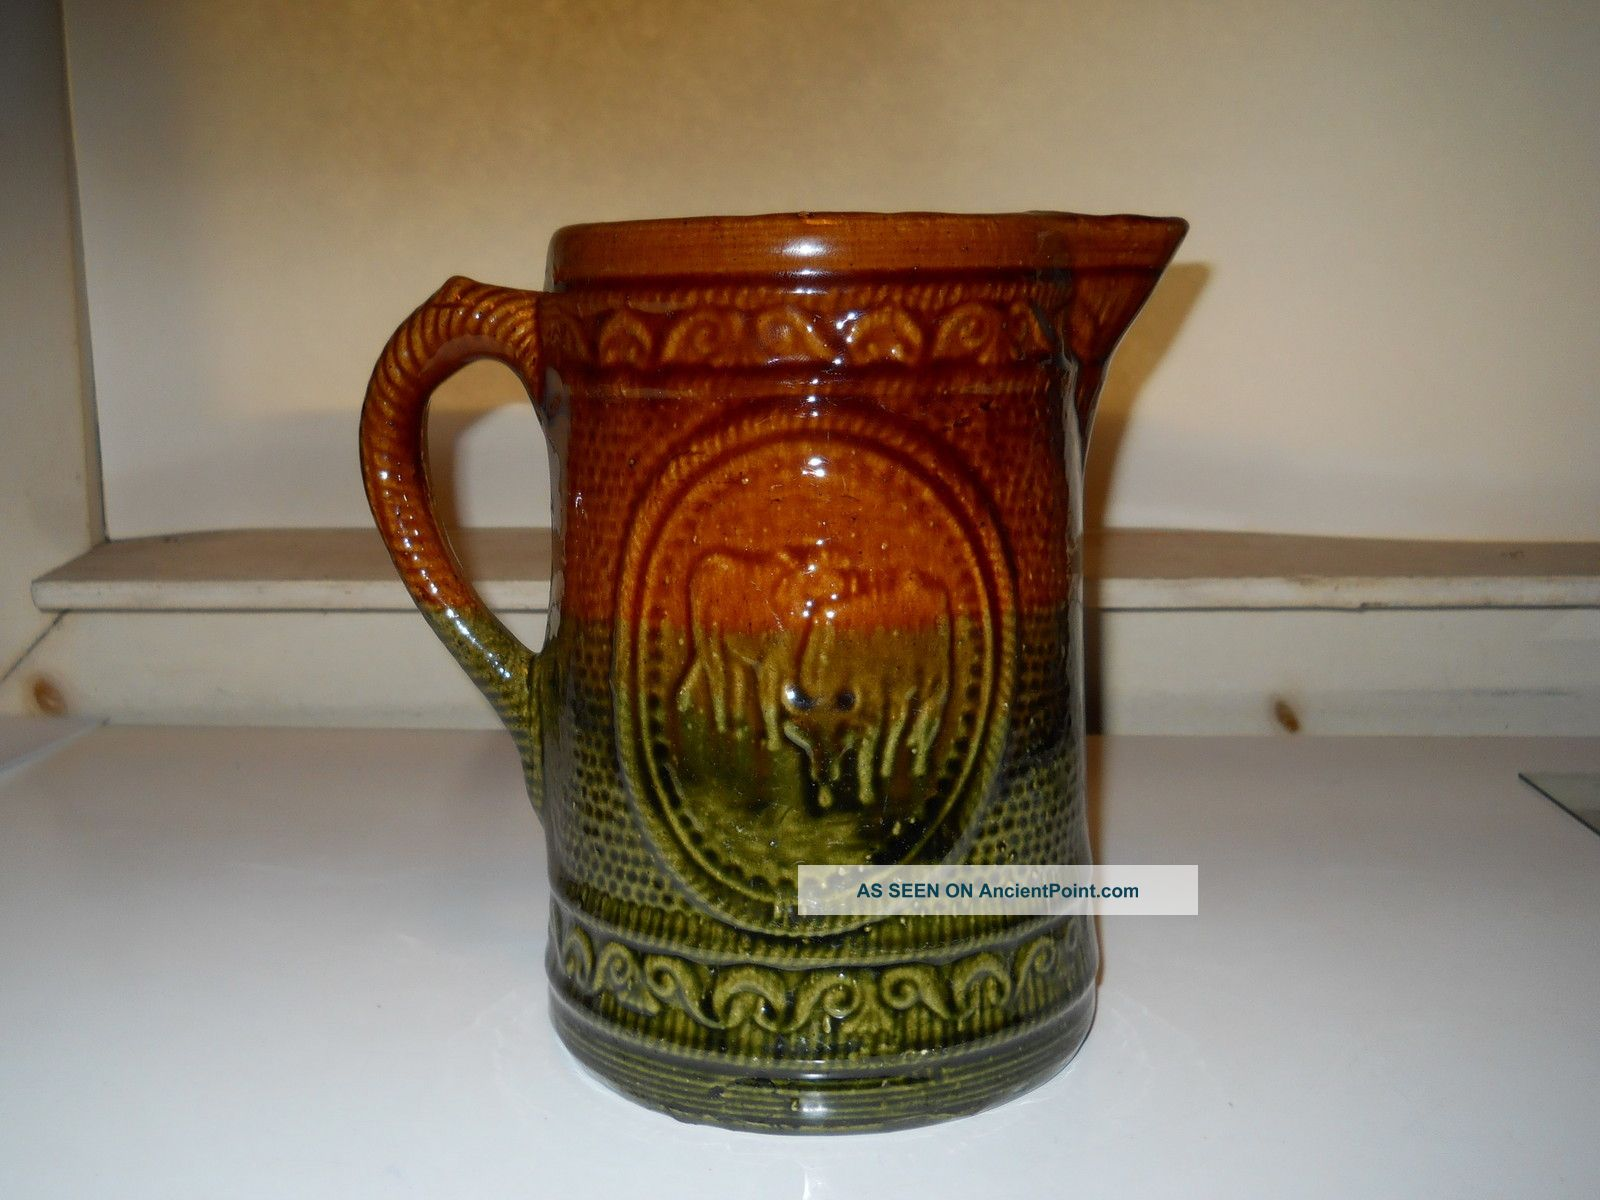 Antique Stoneware Pitcher W/ Emb.  Cows Design Brown/green Glaze Rare Mint Cond. Pitchers photo